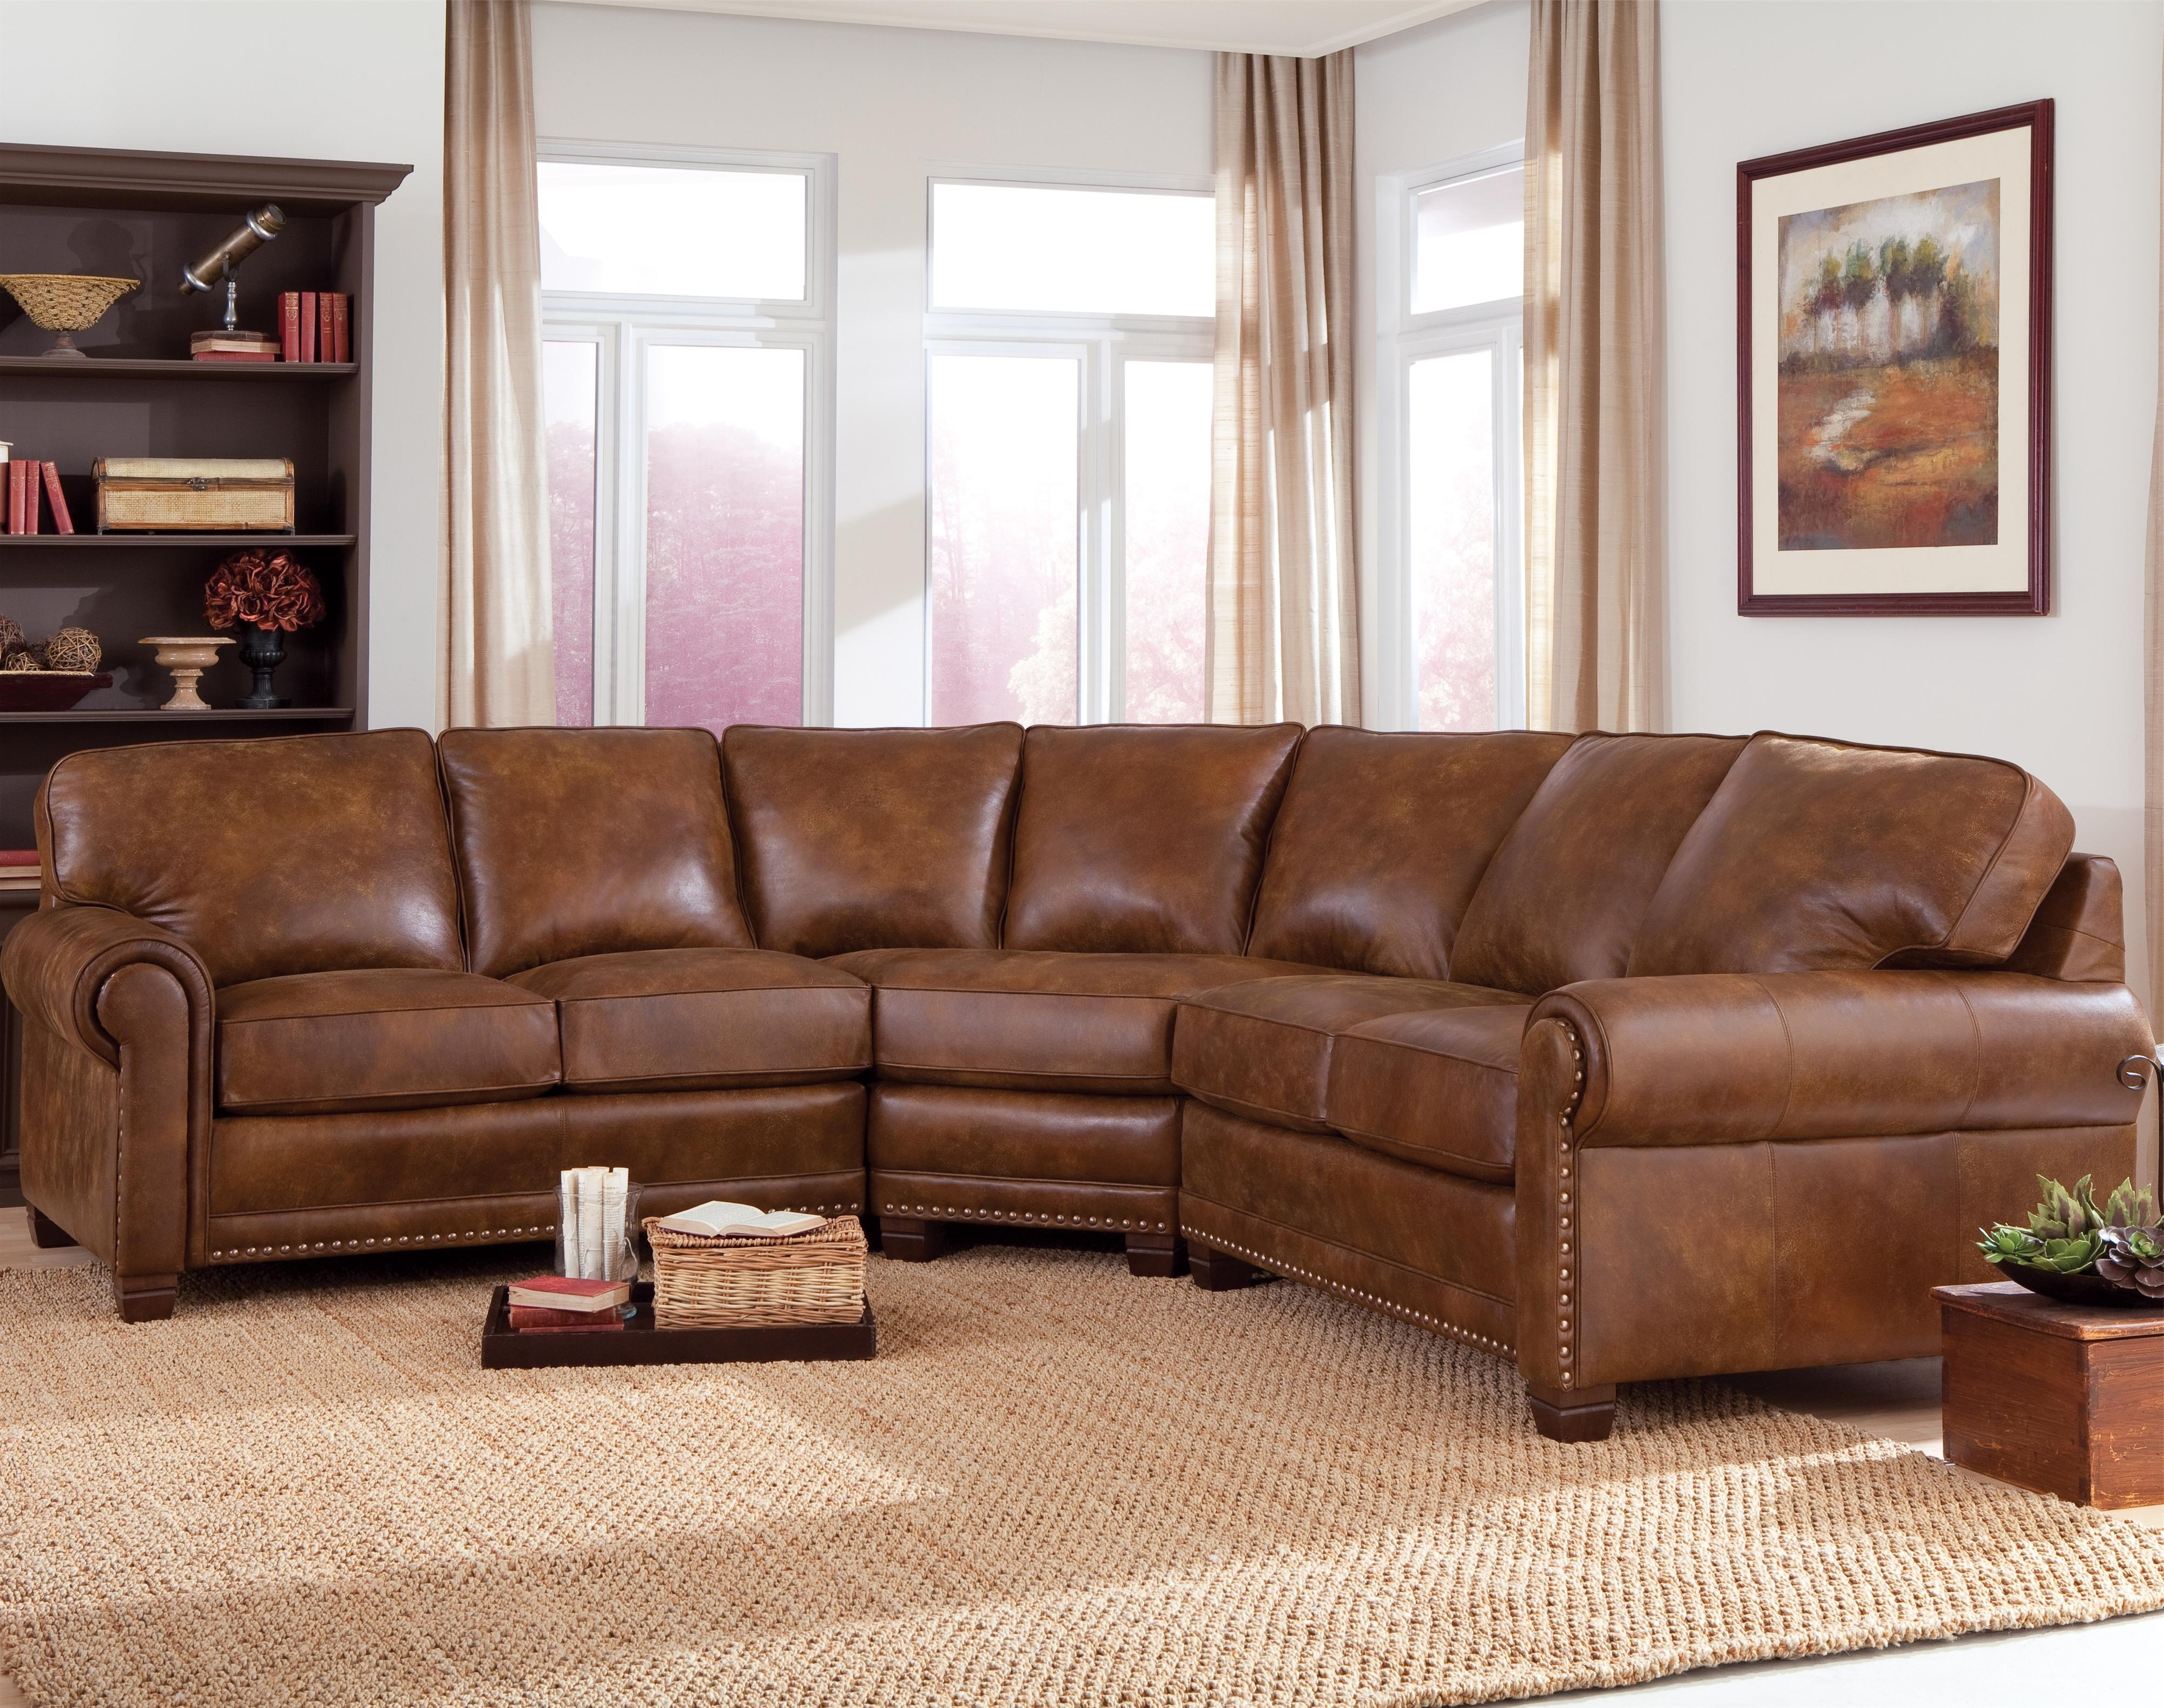 Sectional Sofas With Nailheads Throughout Well Known Traditional 3 Piece Sectional Sofa With Nailhead Trimsmith (View 16 of 20)